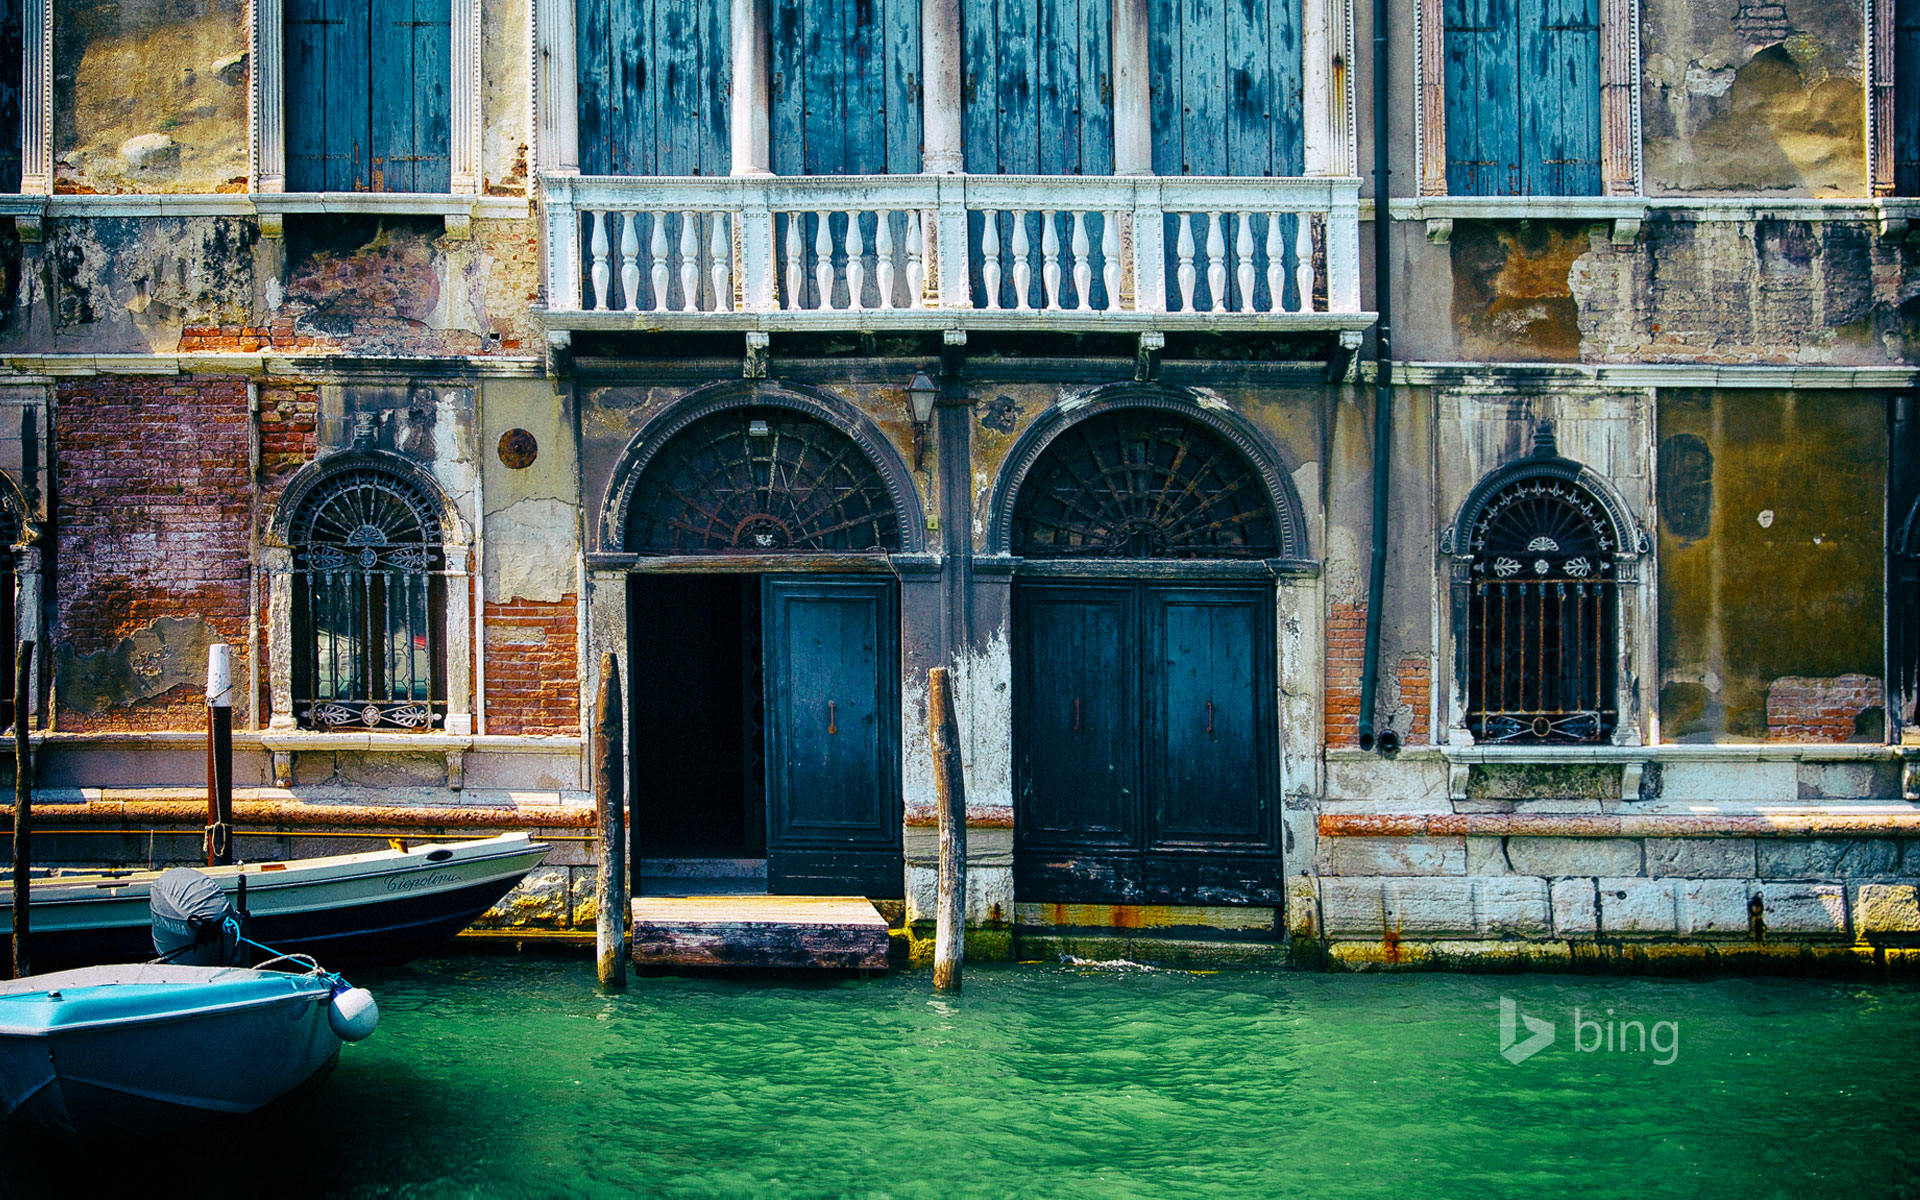 Building façade and canal in Venice, Italy